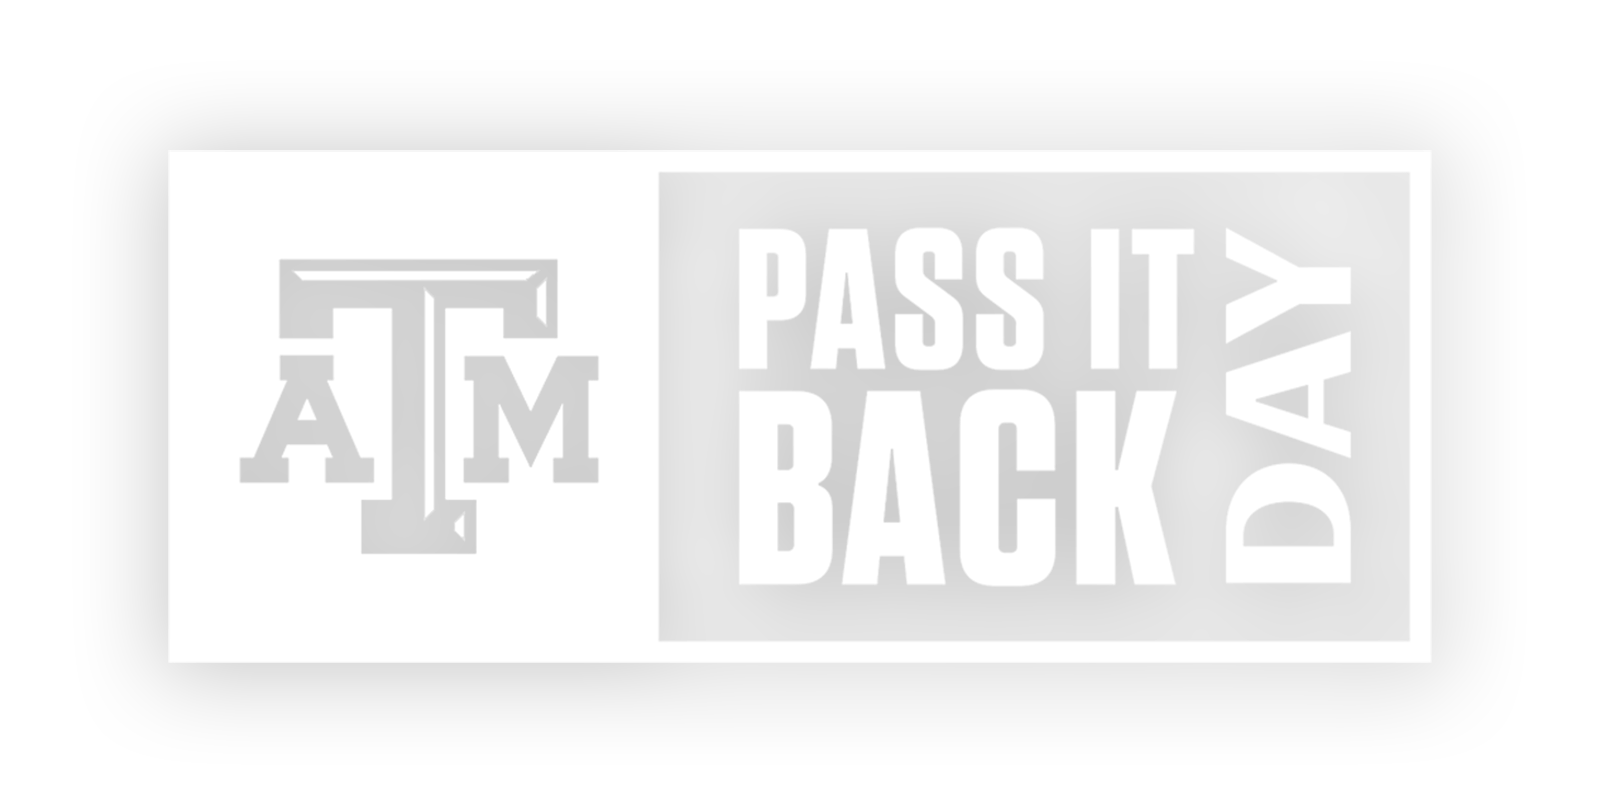 Pass It Back Day